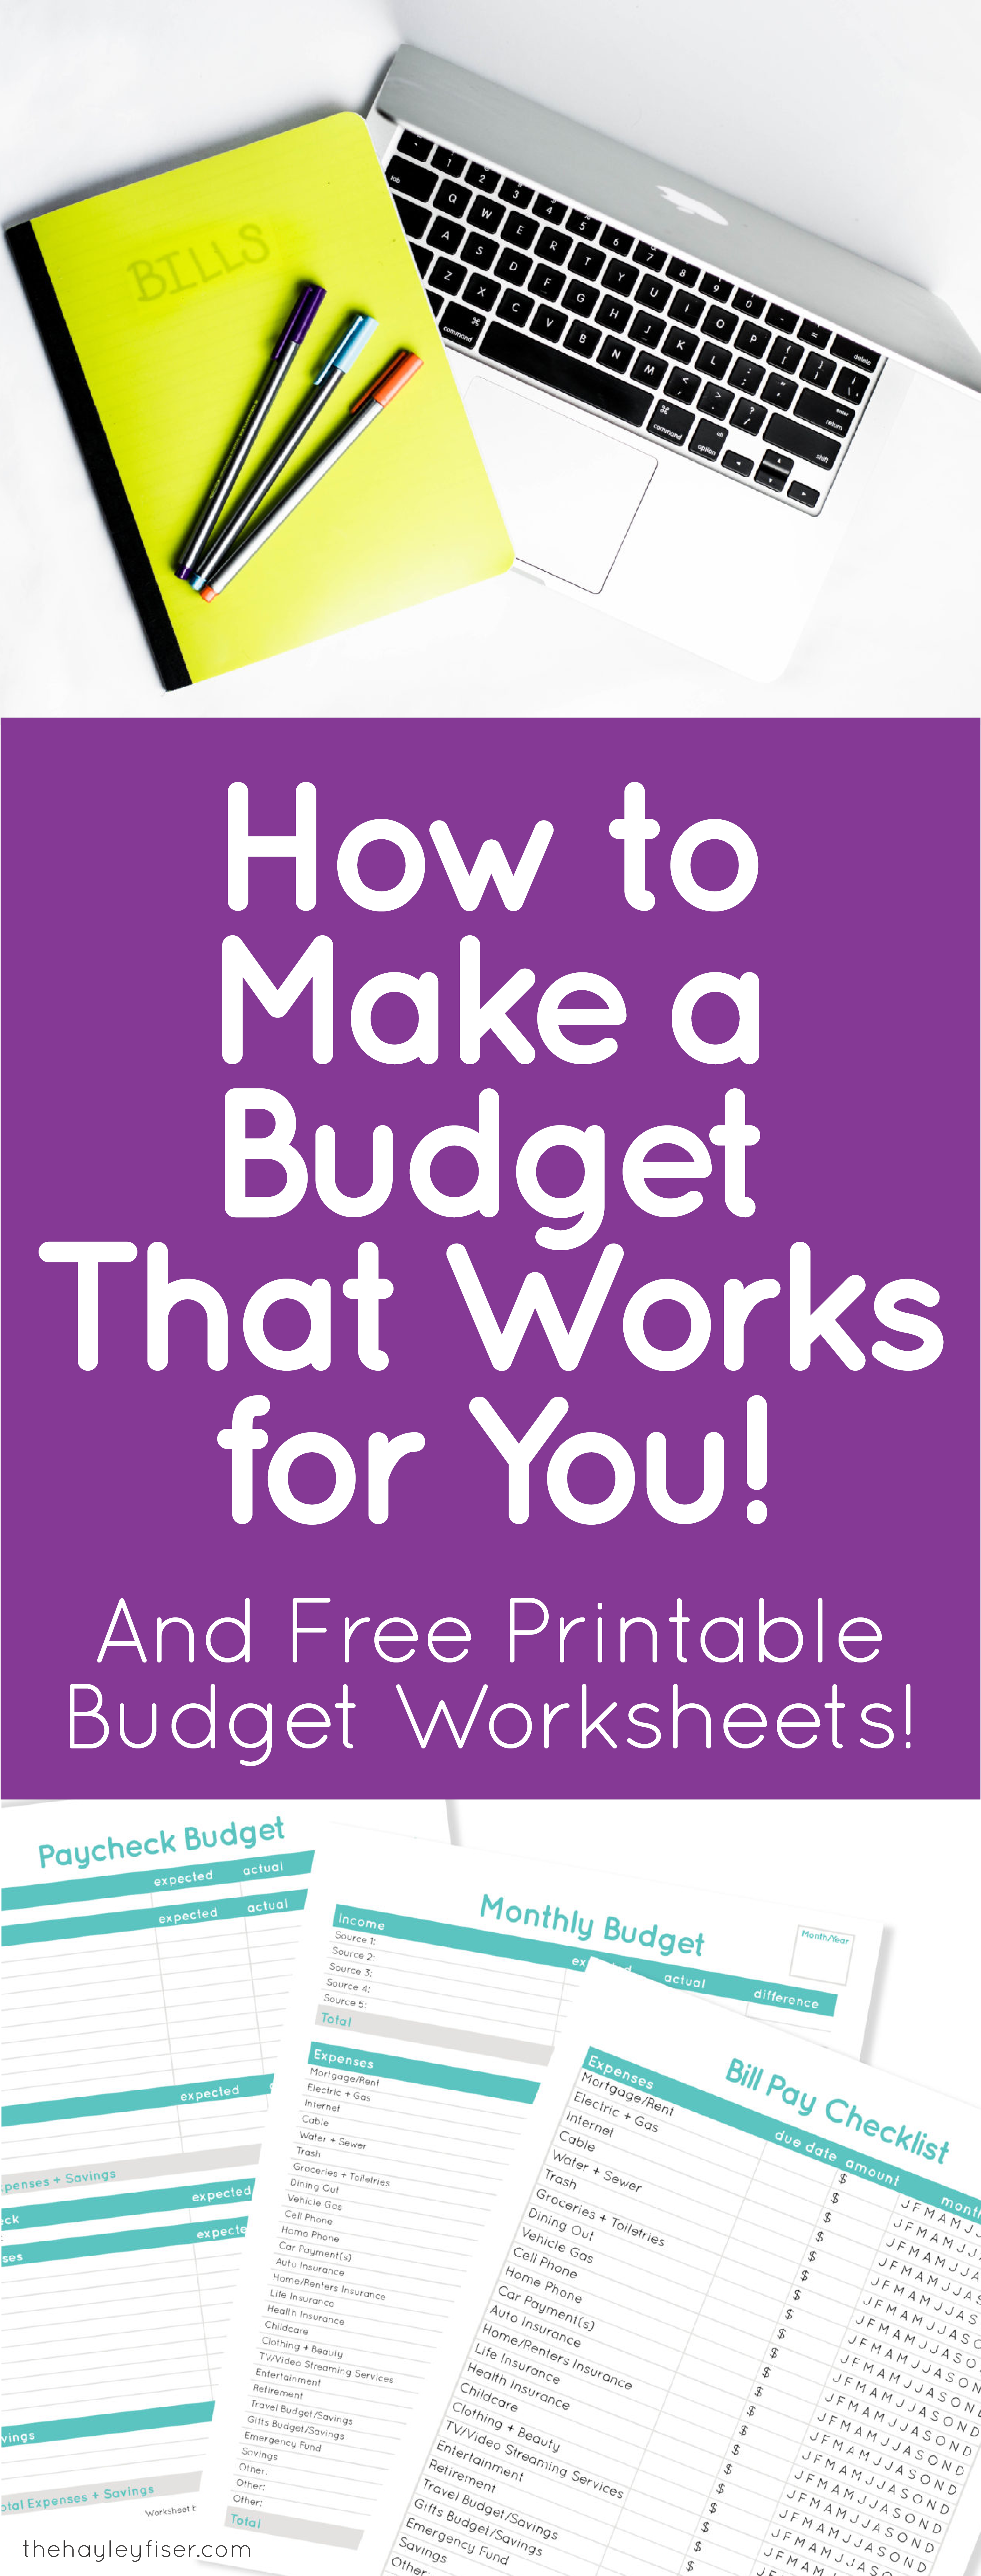 5 Tips To Starting Your Monthly Budget